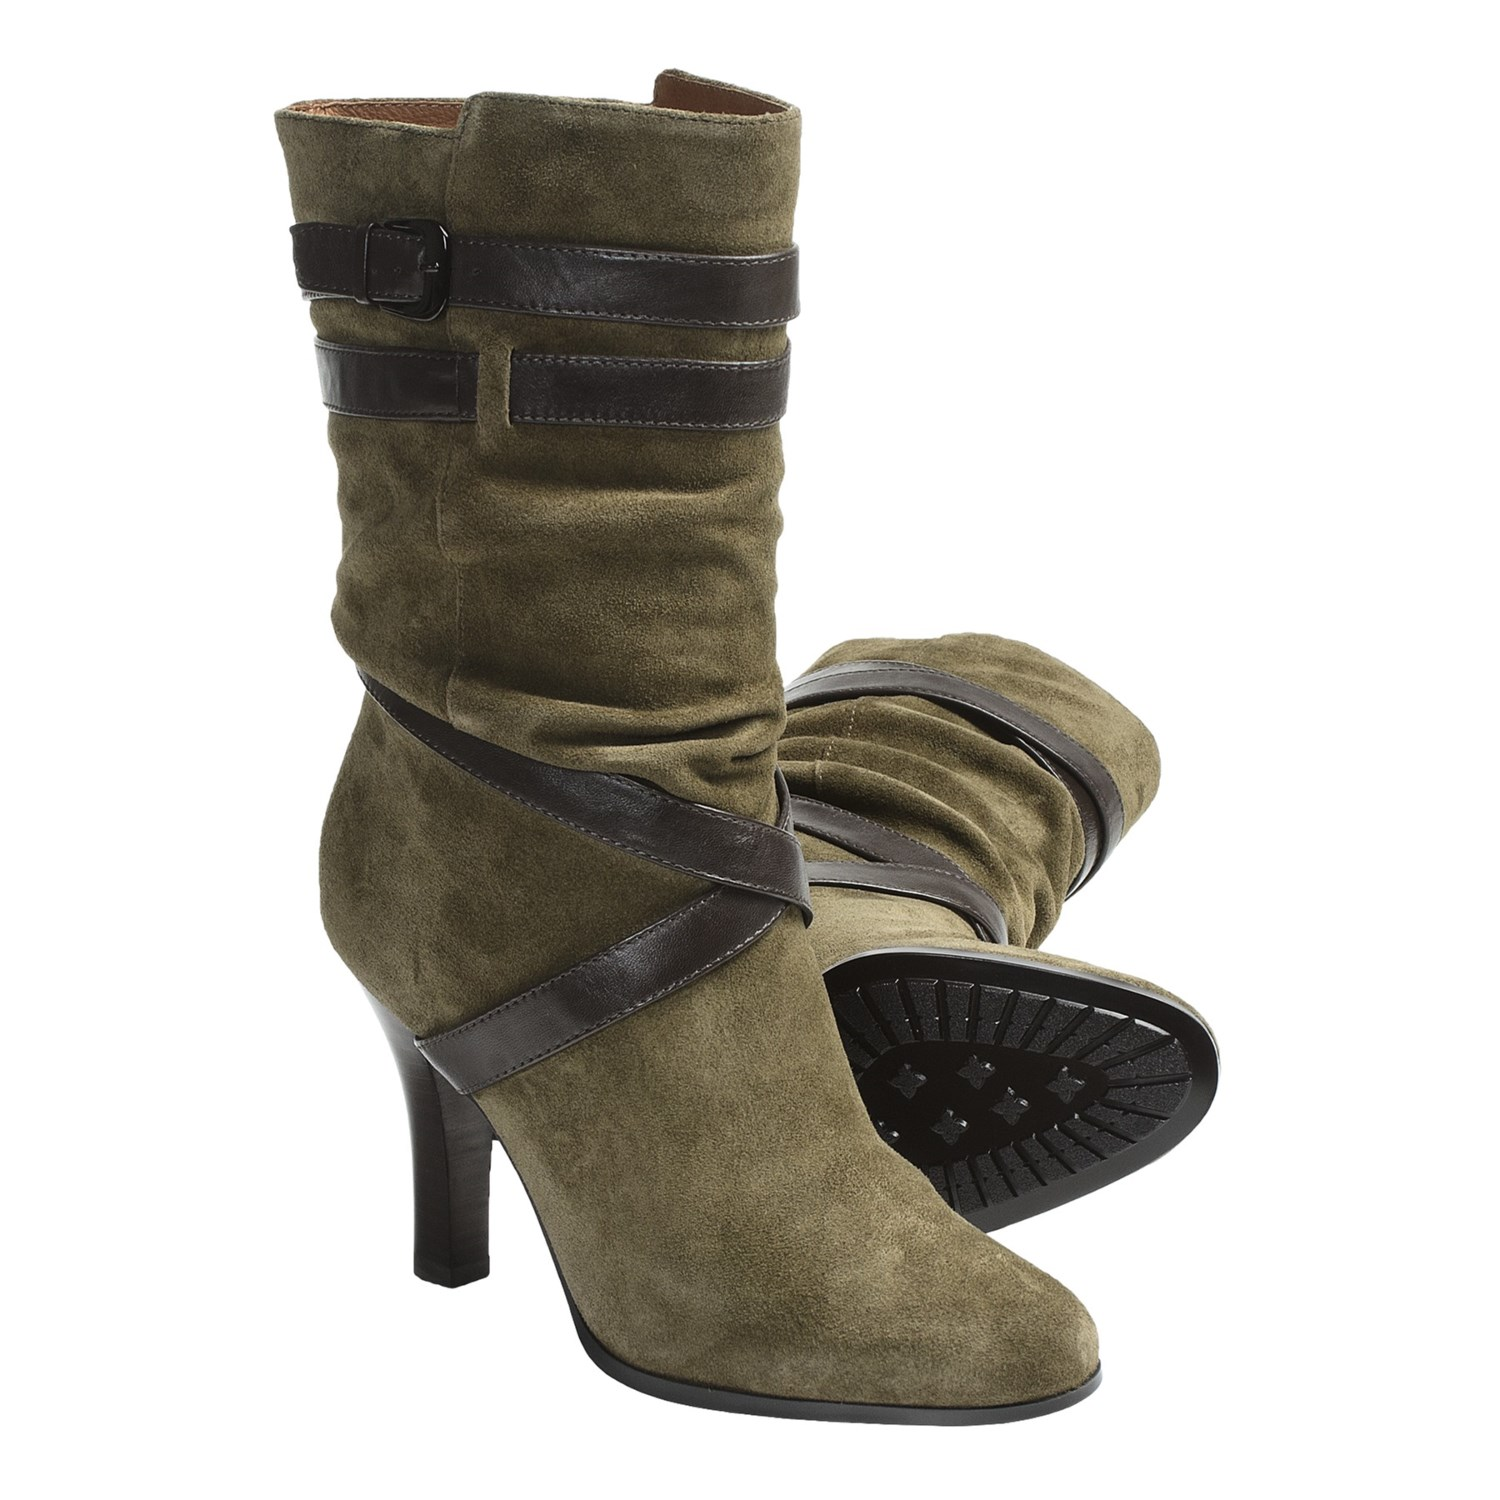 Womens Leather Boots Clearance 70